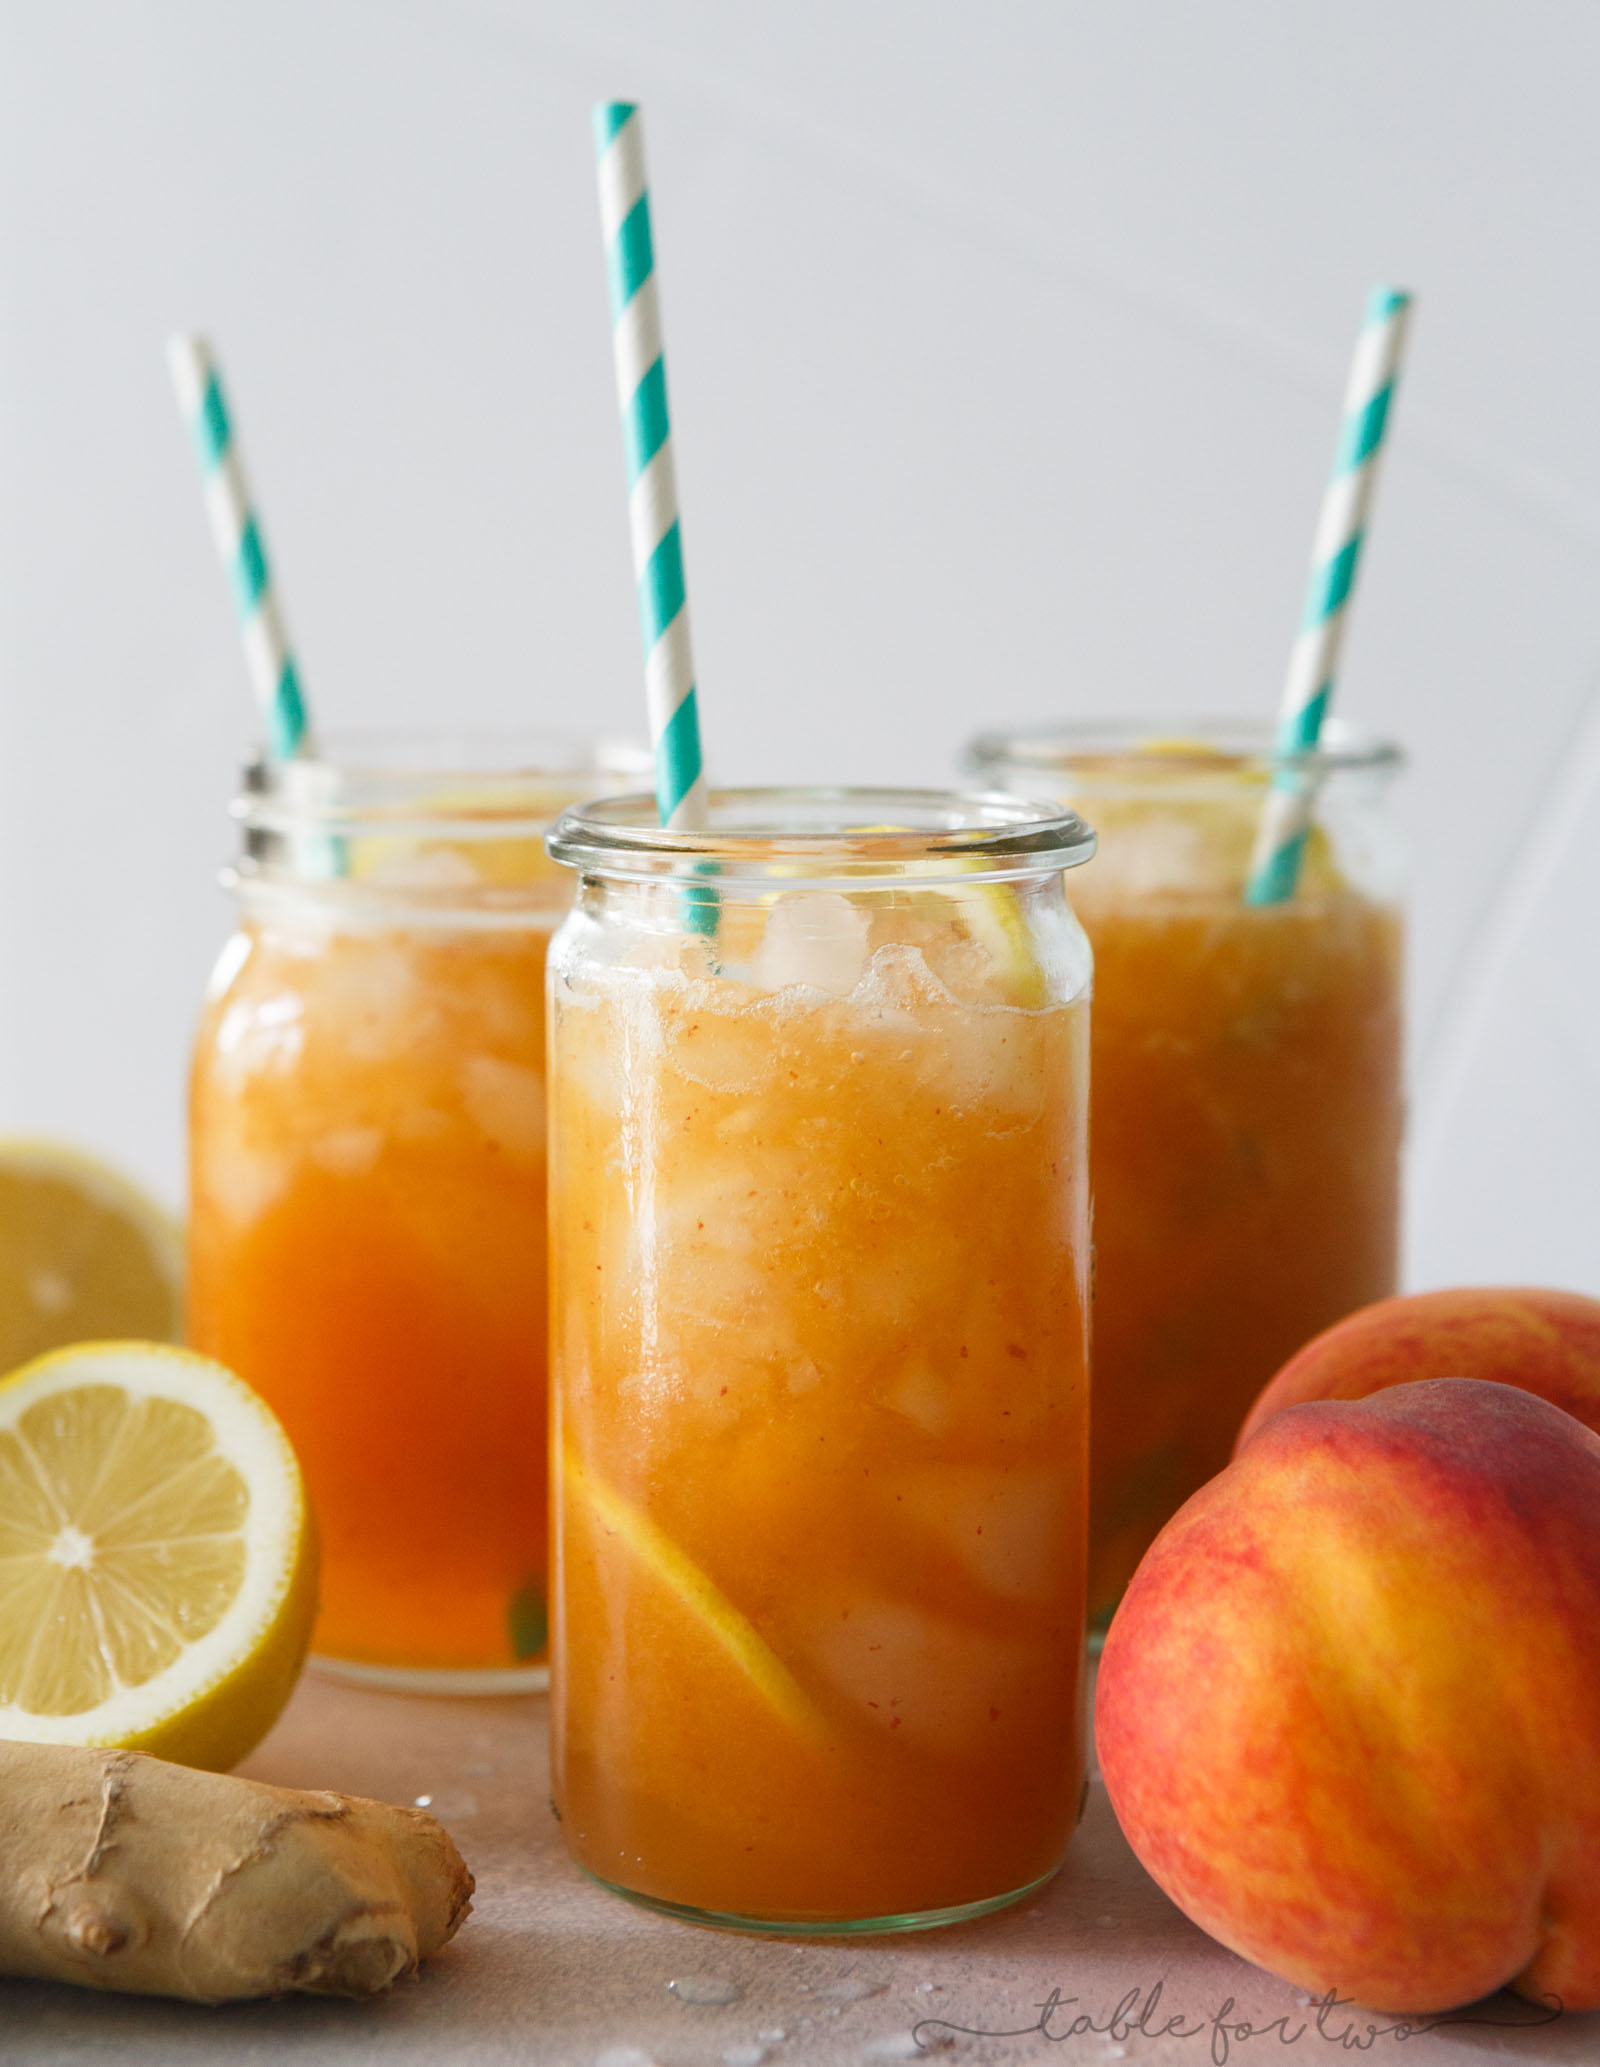 This lemon ginger peach spritzer is so fresh and refreshing that you'll be sipping on this all day! The flavors pair perfectly together and it's so easy to make with all the peaches you've picked up at the market!